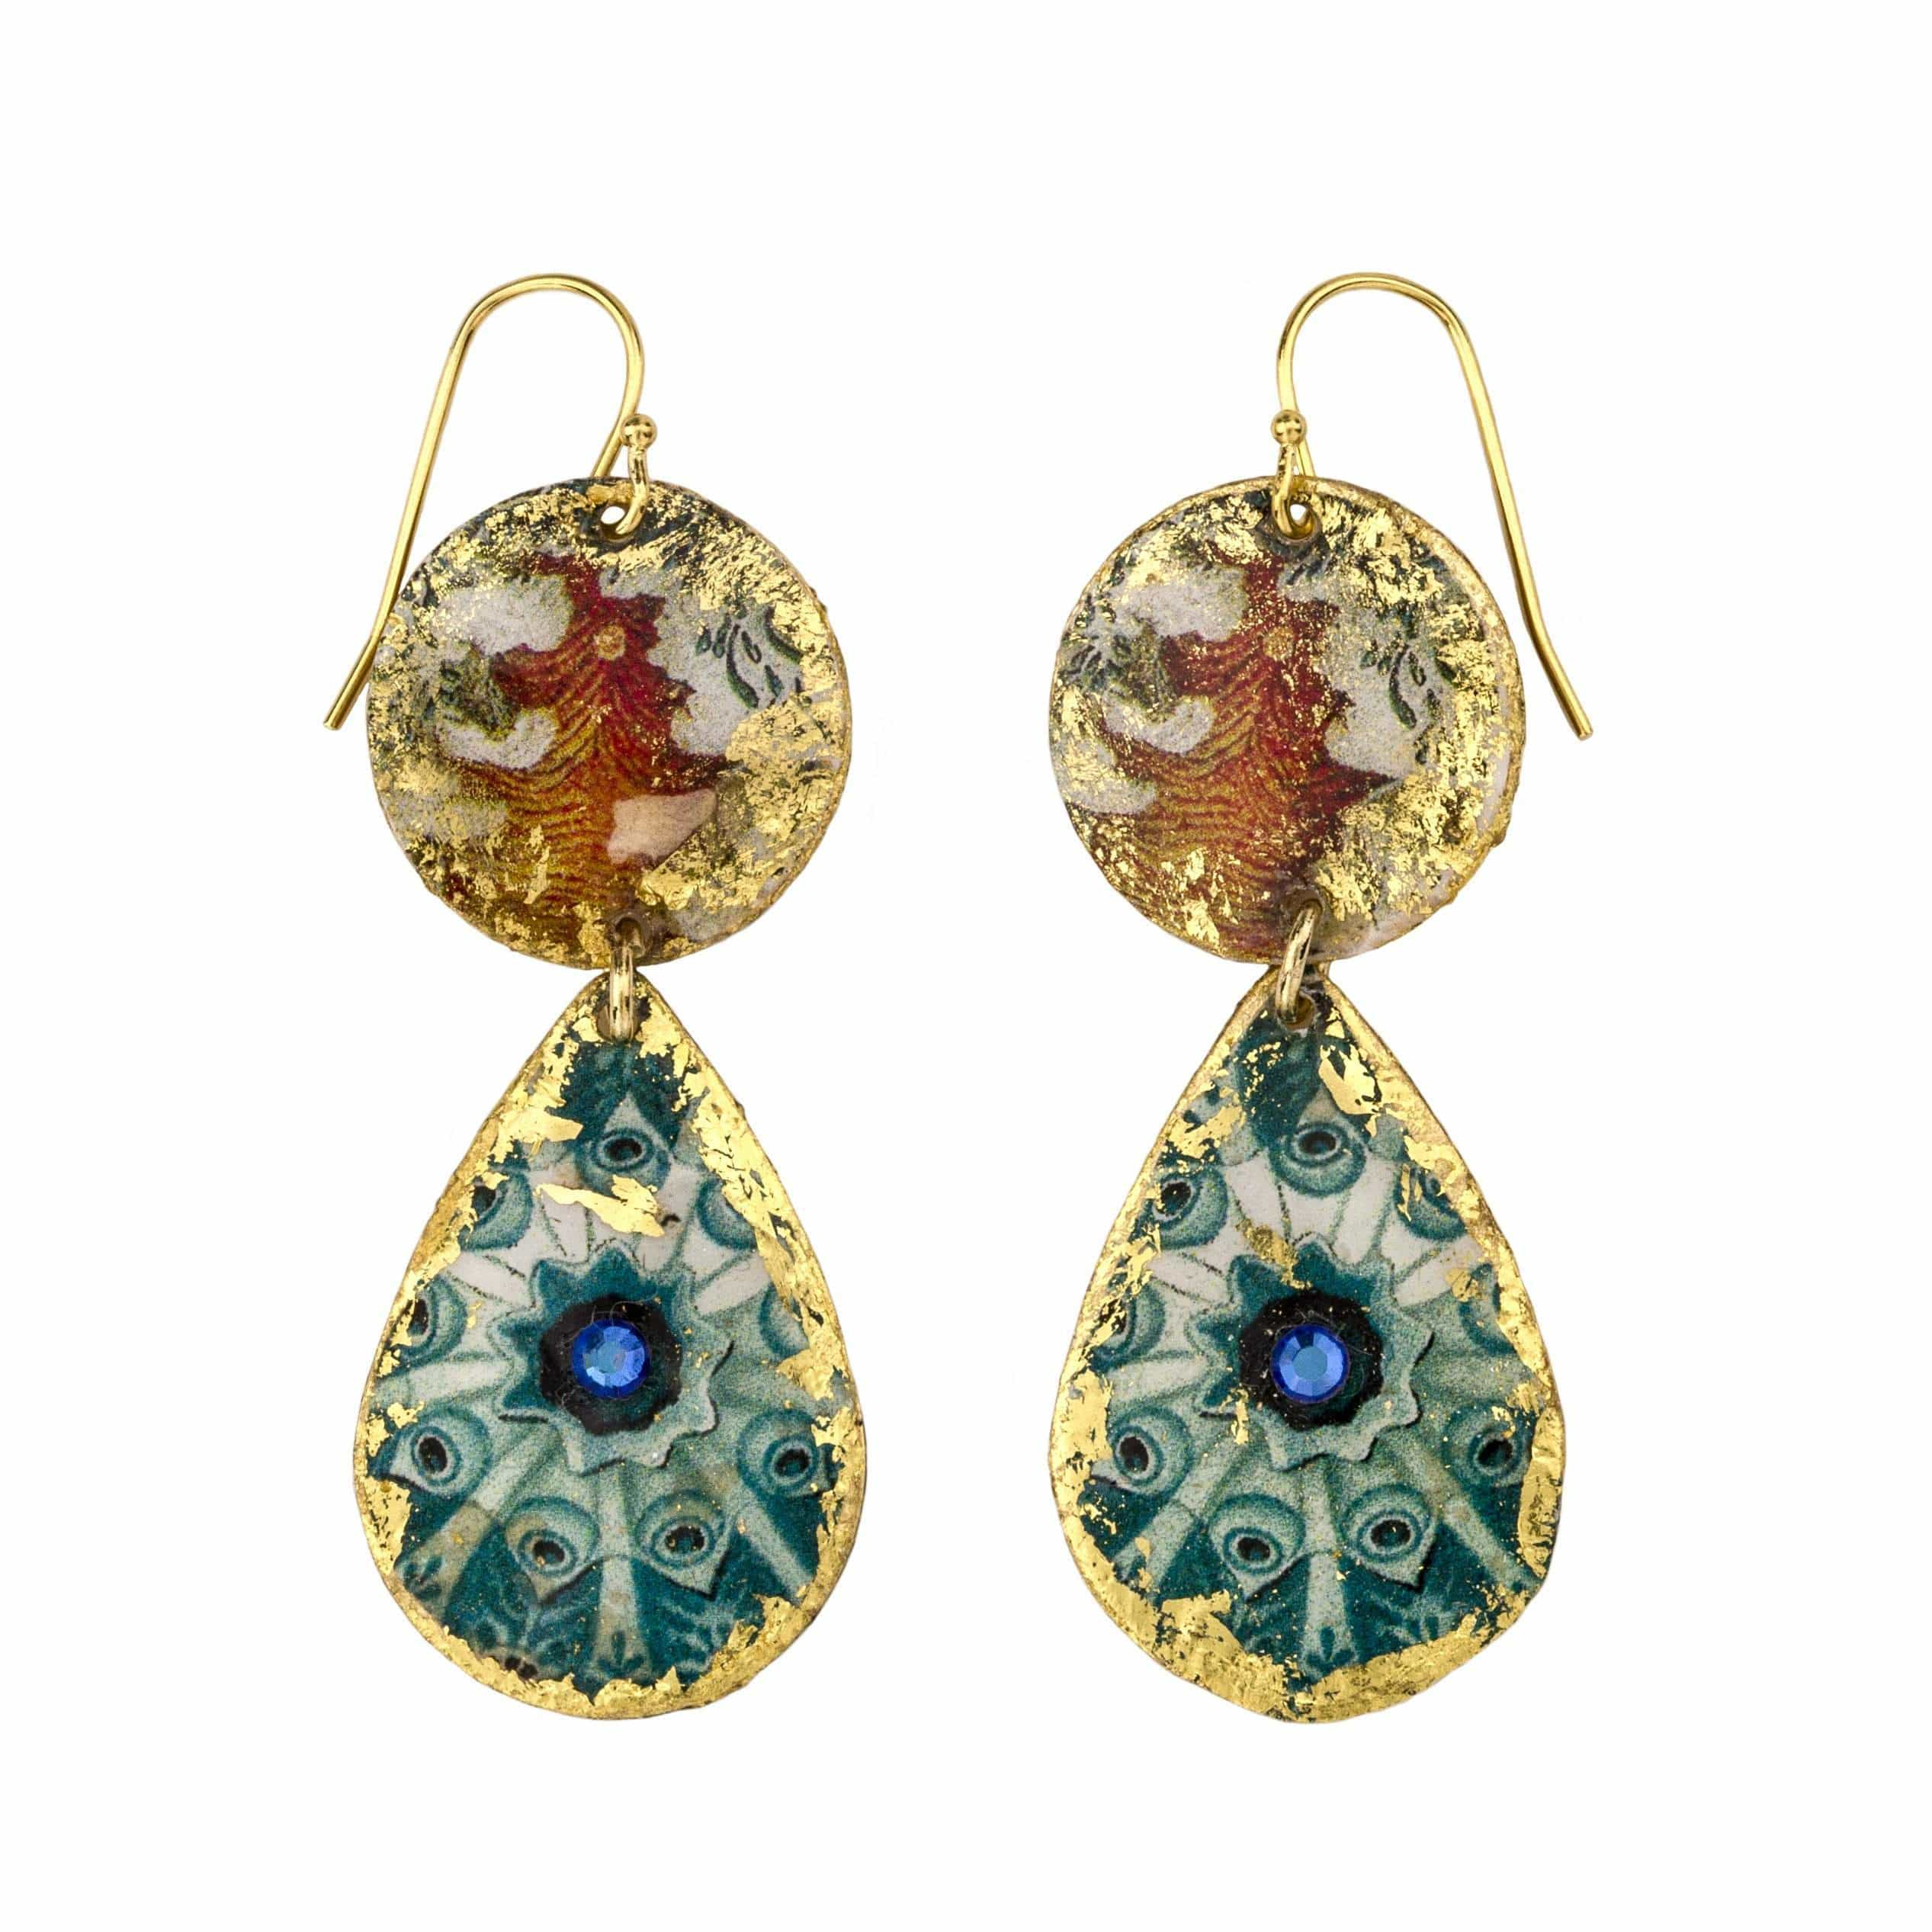 Jellies Mini Gold Teardrops Earrings - OC402-Evocateur-Renee Taylor Gallery